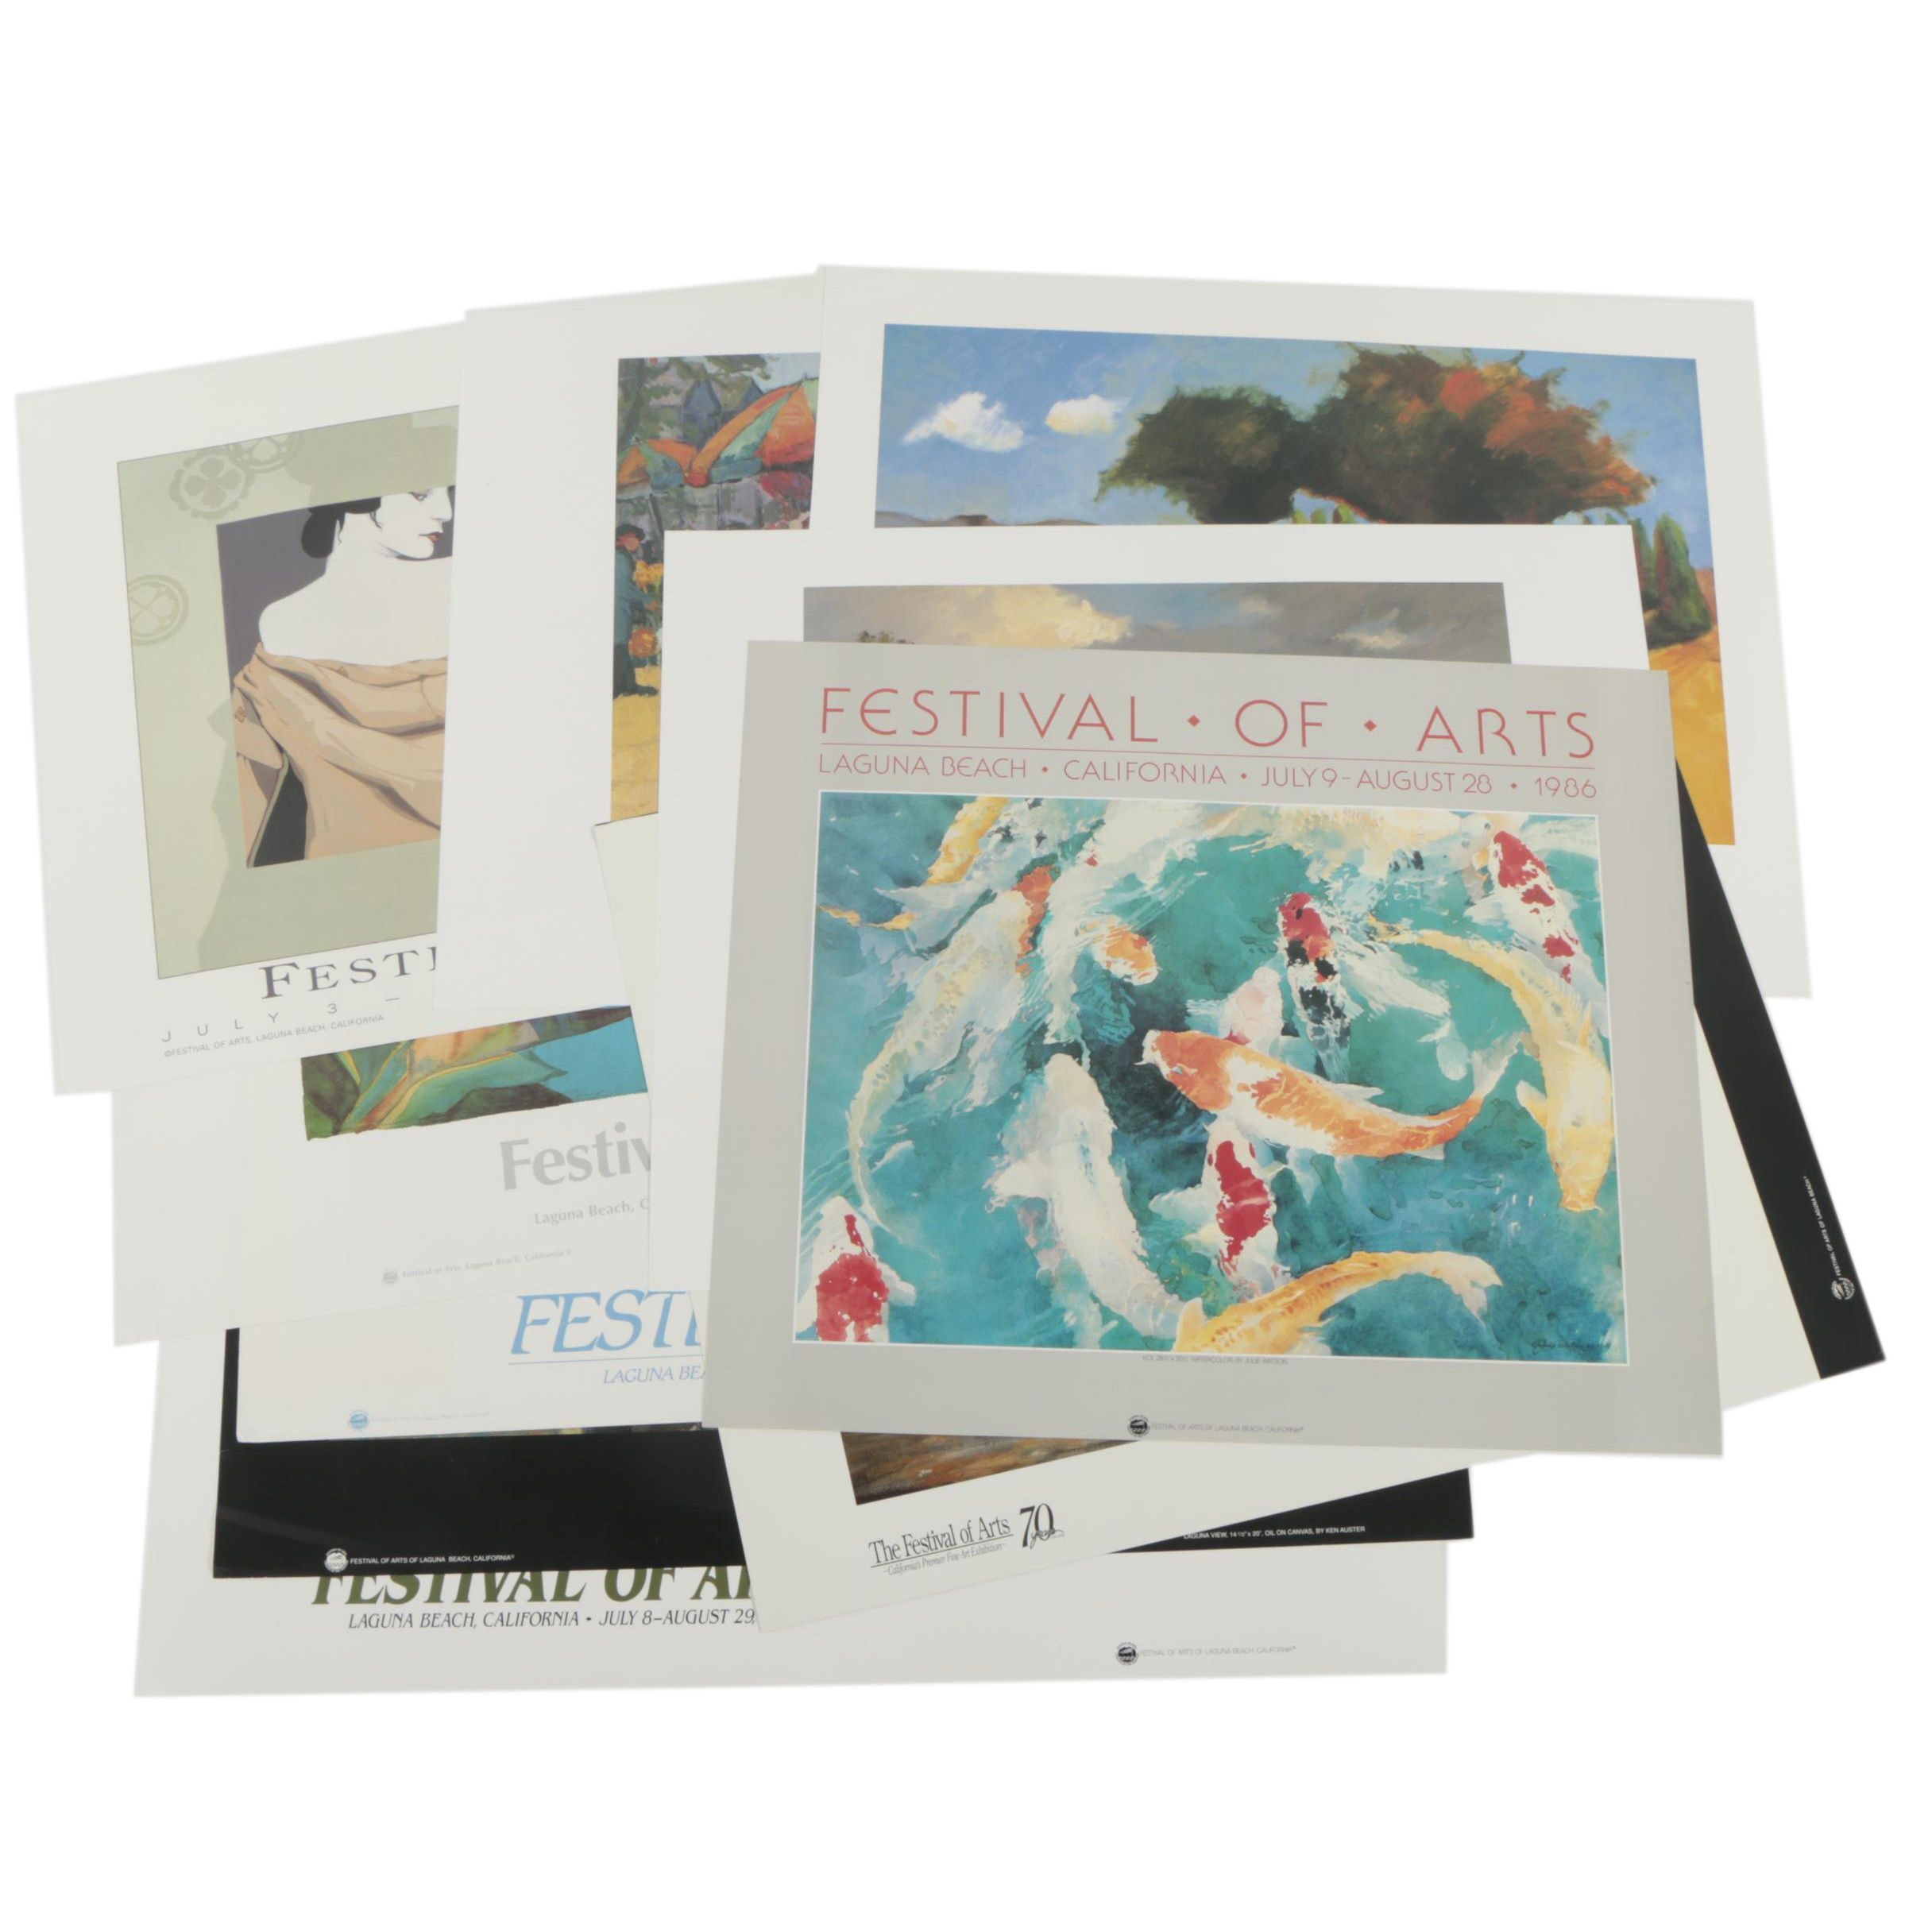 Circa 2000 Offset Lithograph Exhibition Posters for Festival of Arts